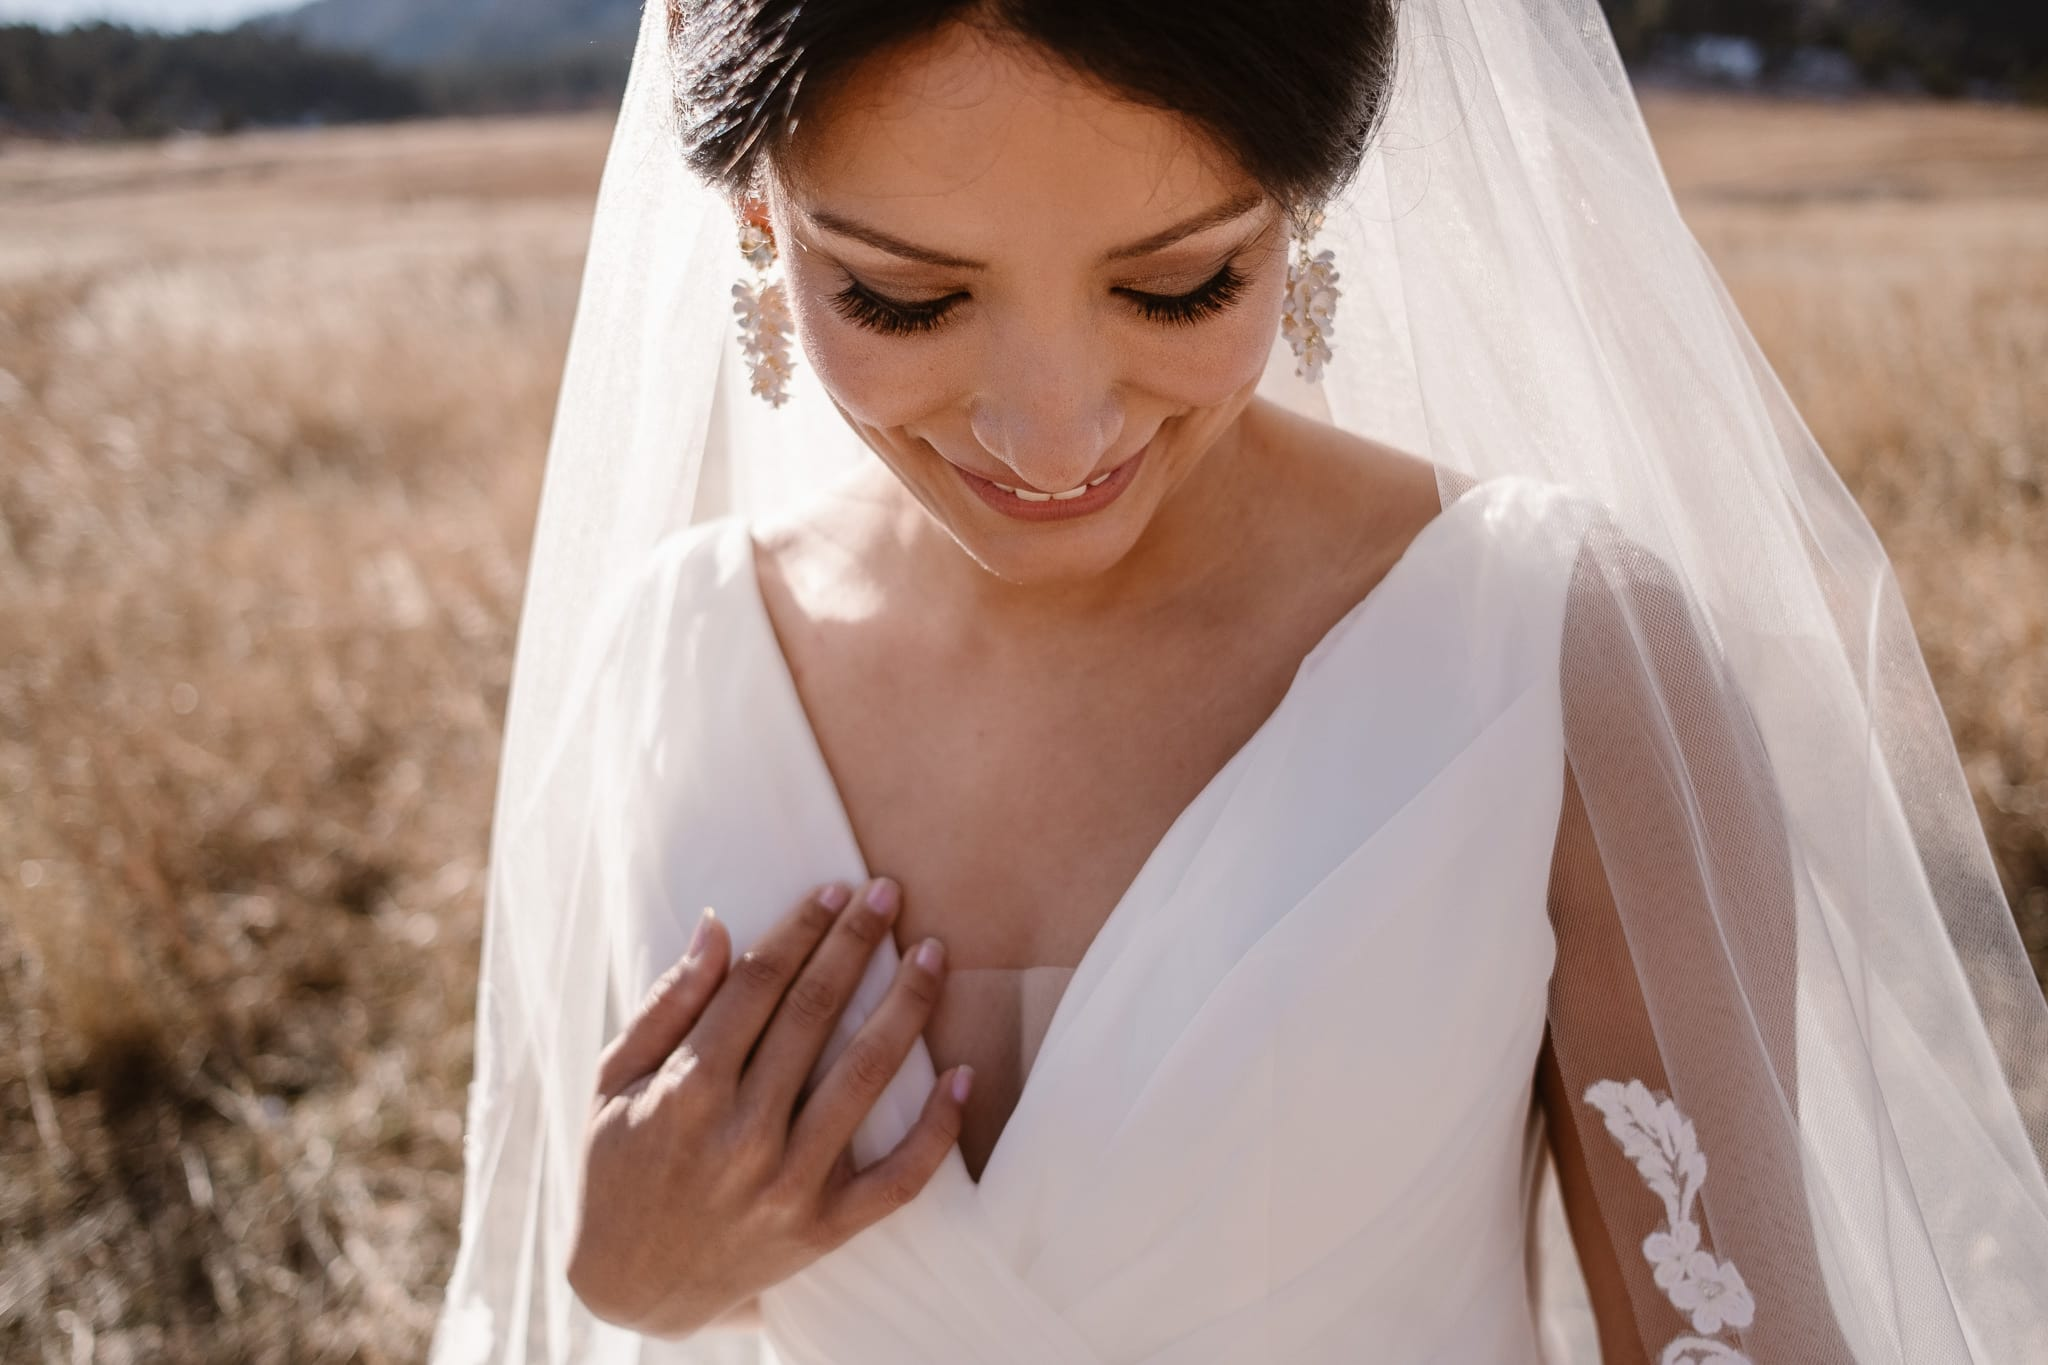 Bride portraits at Chautauqua with views of the Flatirons, Boulder wedding photographer, Colorado wedding photographer, St Julien wedding with mountain wedding photos, bride makeup closeup